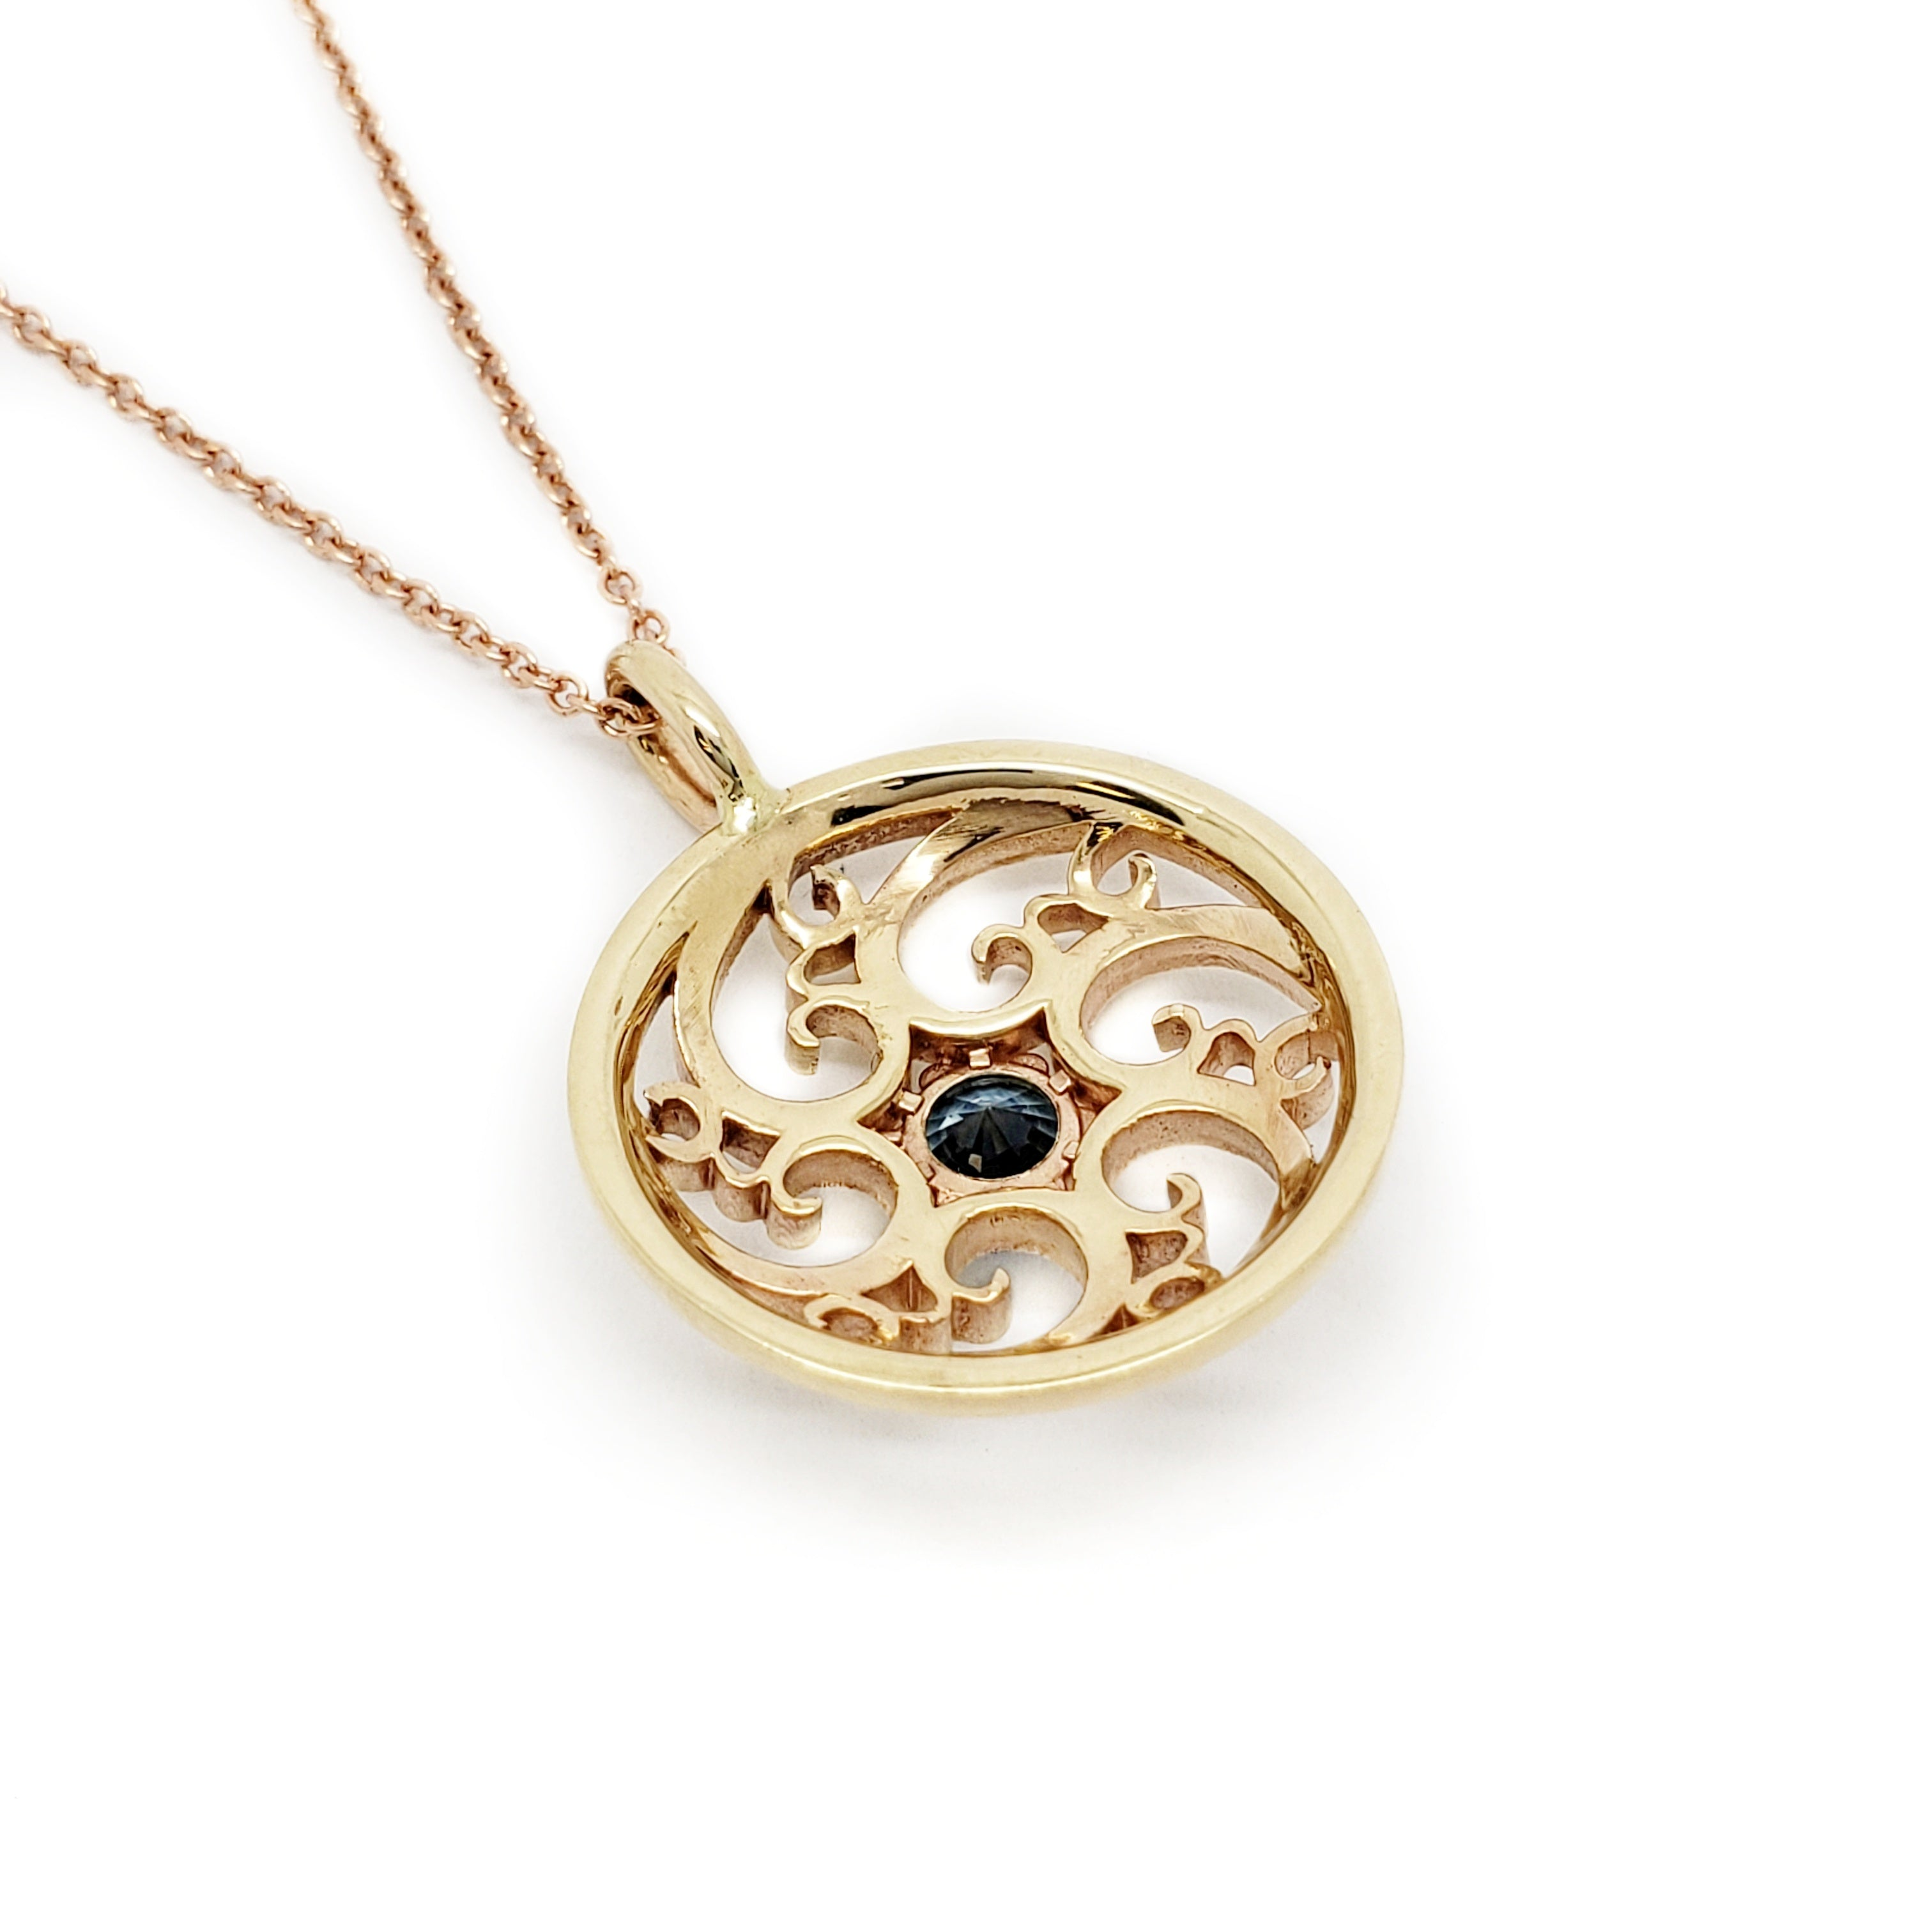 handcrafted unique 14kt yellow gold circle circular swirl pendant filigree blue montana sapphire necklace era design